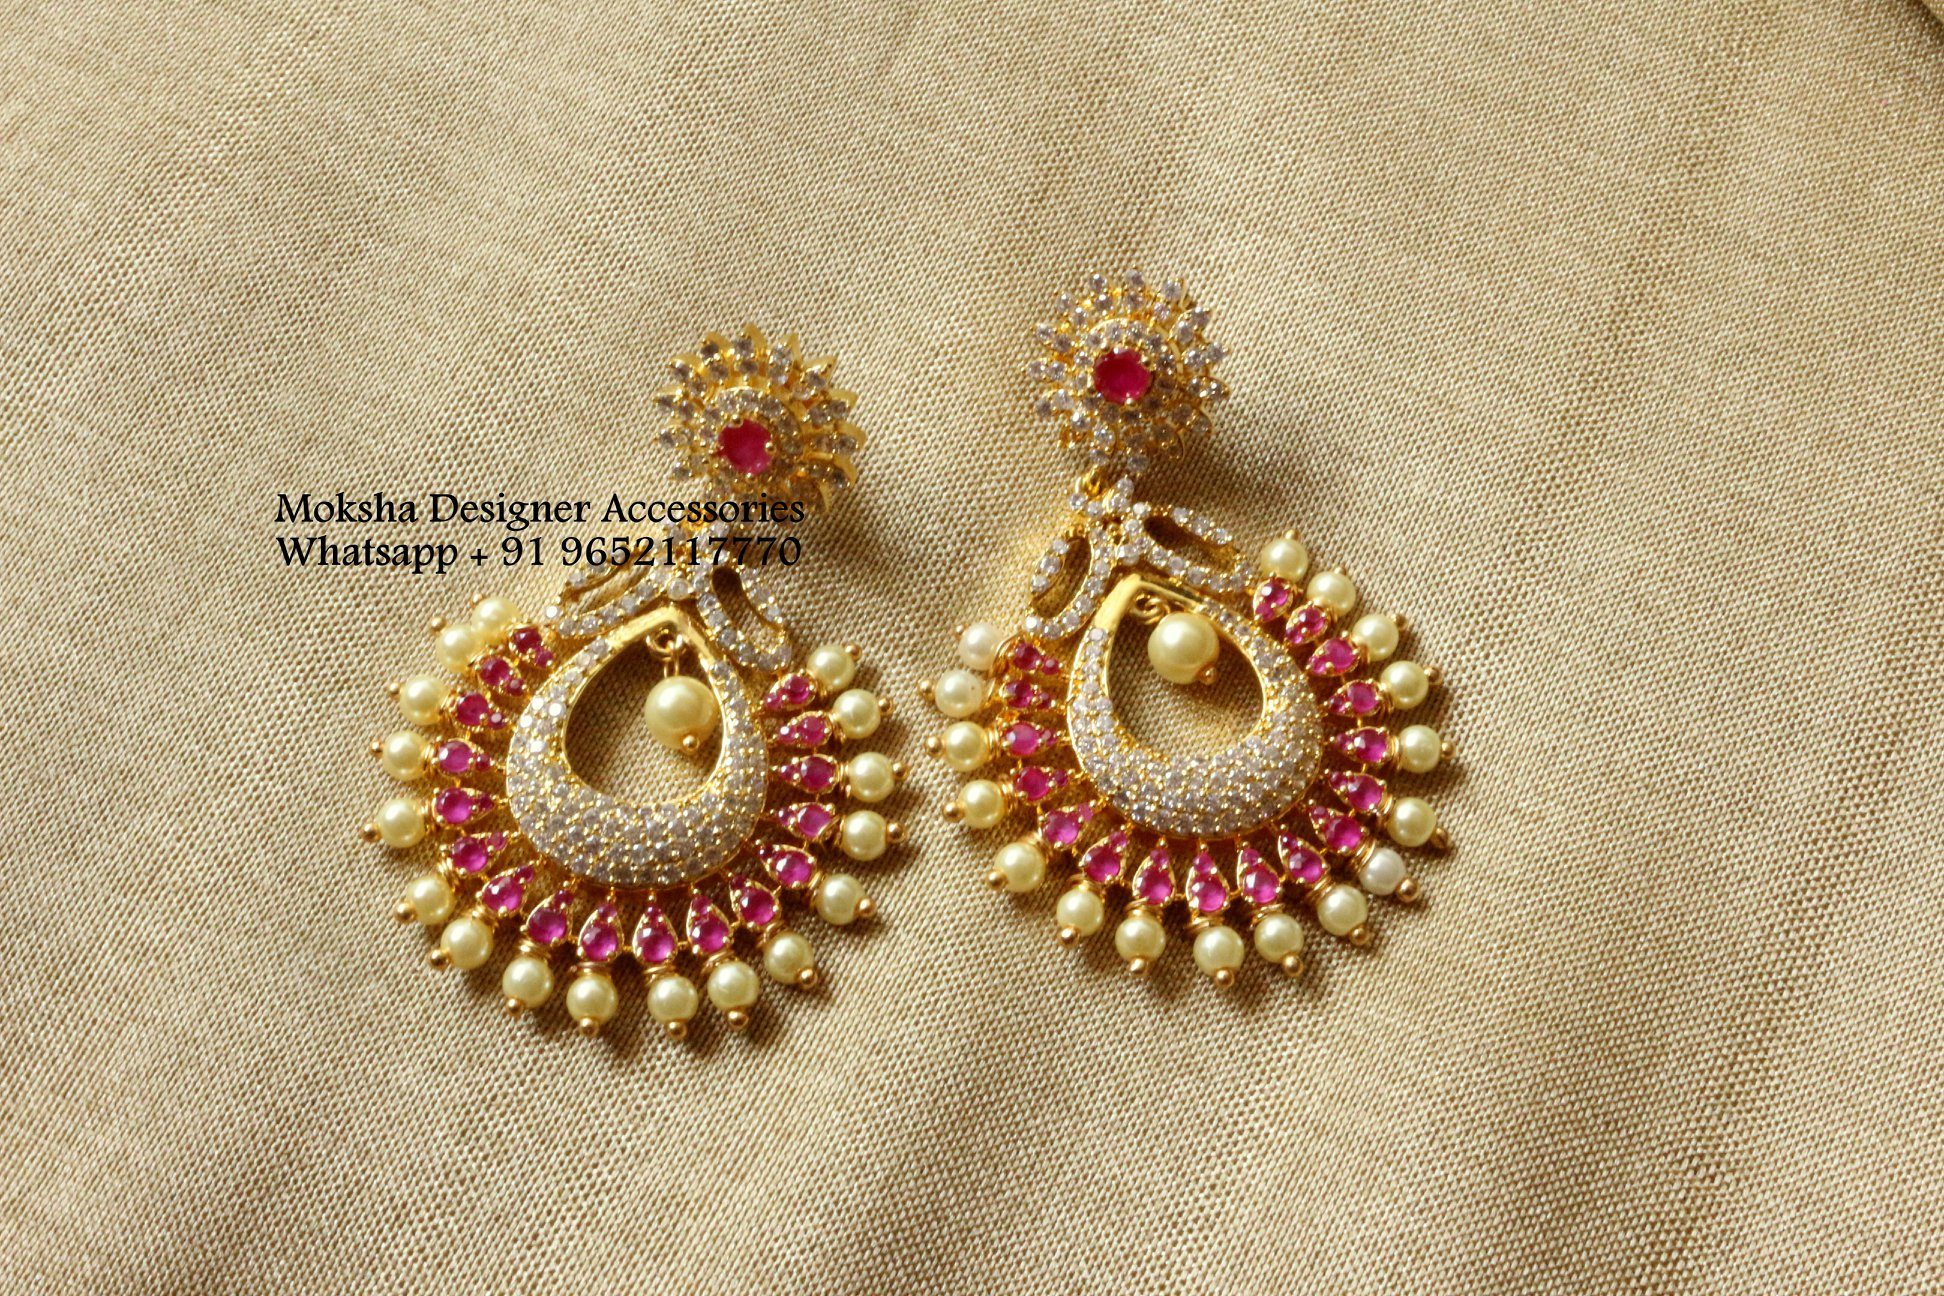 Designer earrings Moksha Designer Accessories